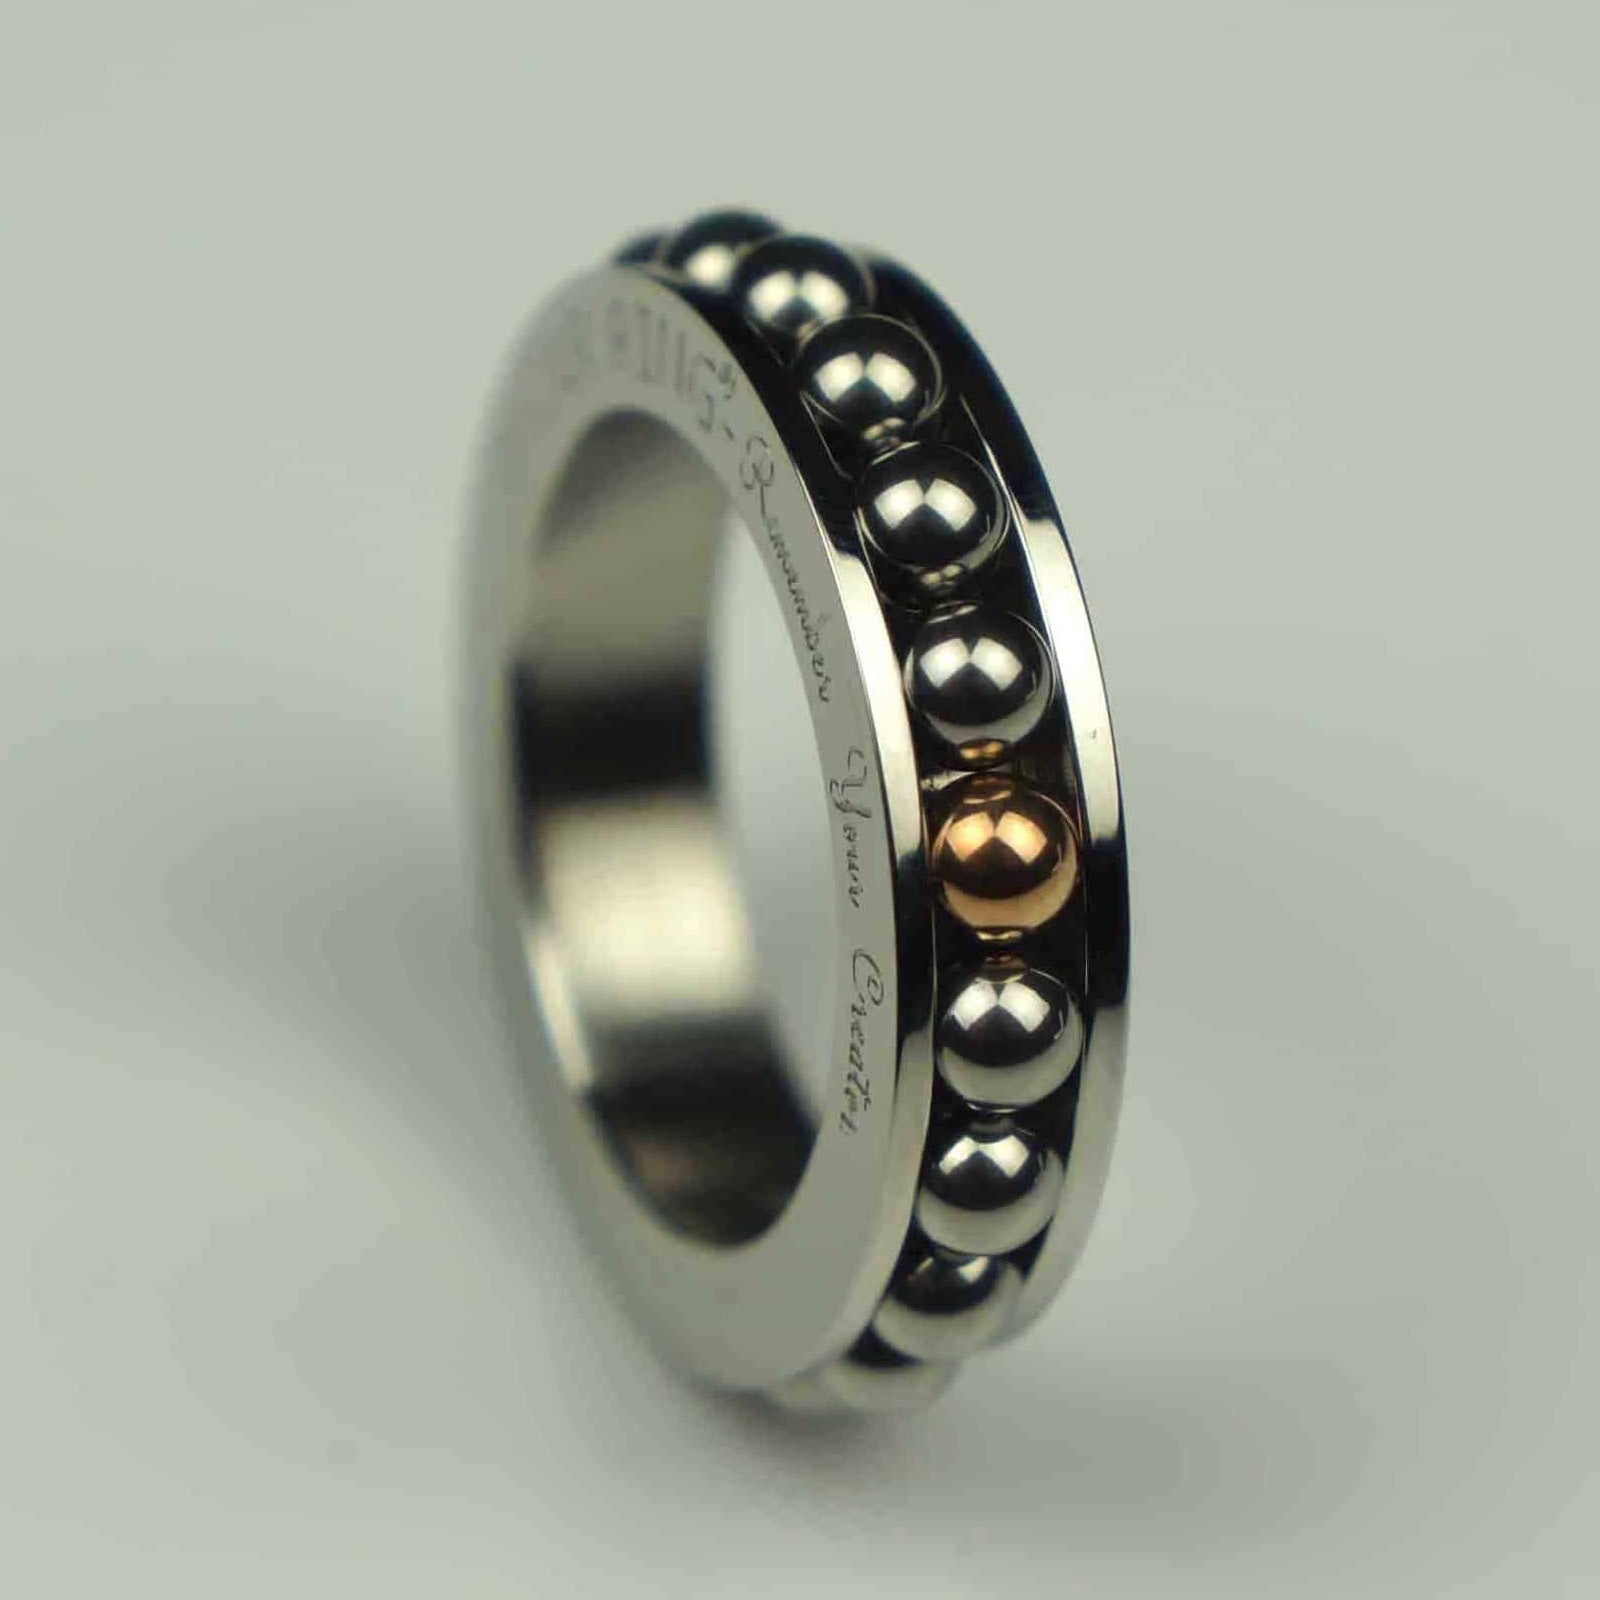 Spinner Ring | Made by Dhikr Ring